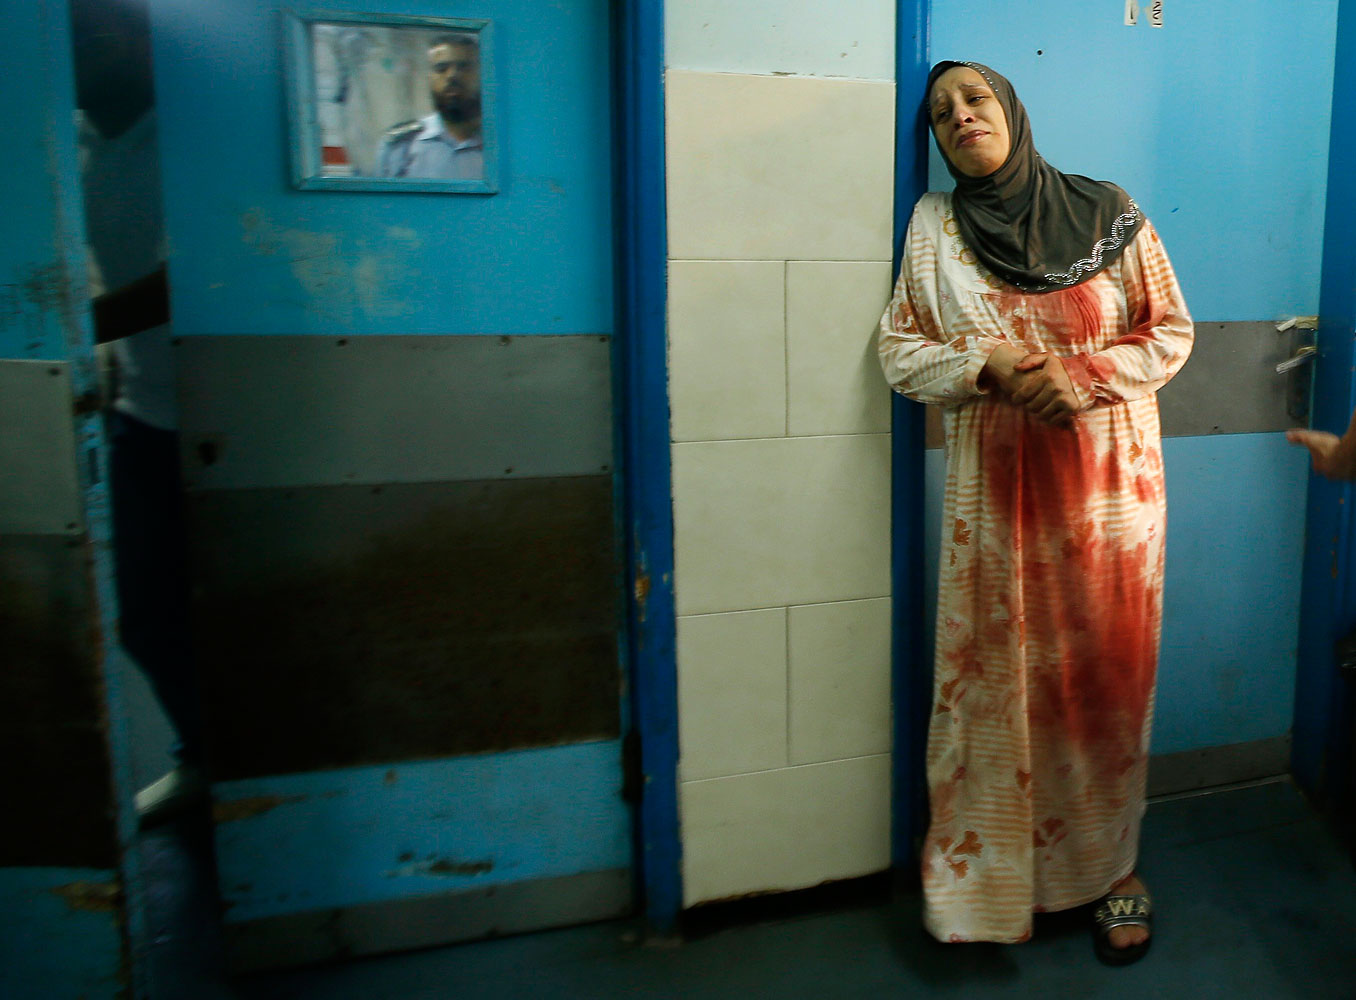 A Palestinian woman wearing clothes stained with the blood of other relatives, who medics said were wounded in Israeli shelling, cries at a hospital in Gaza City July 20, 2014.